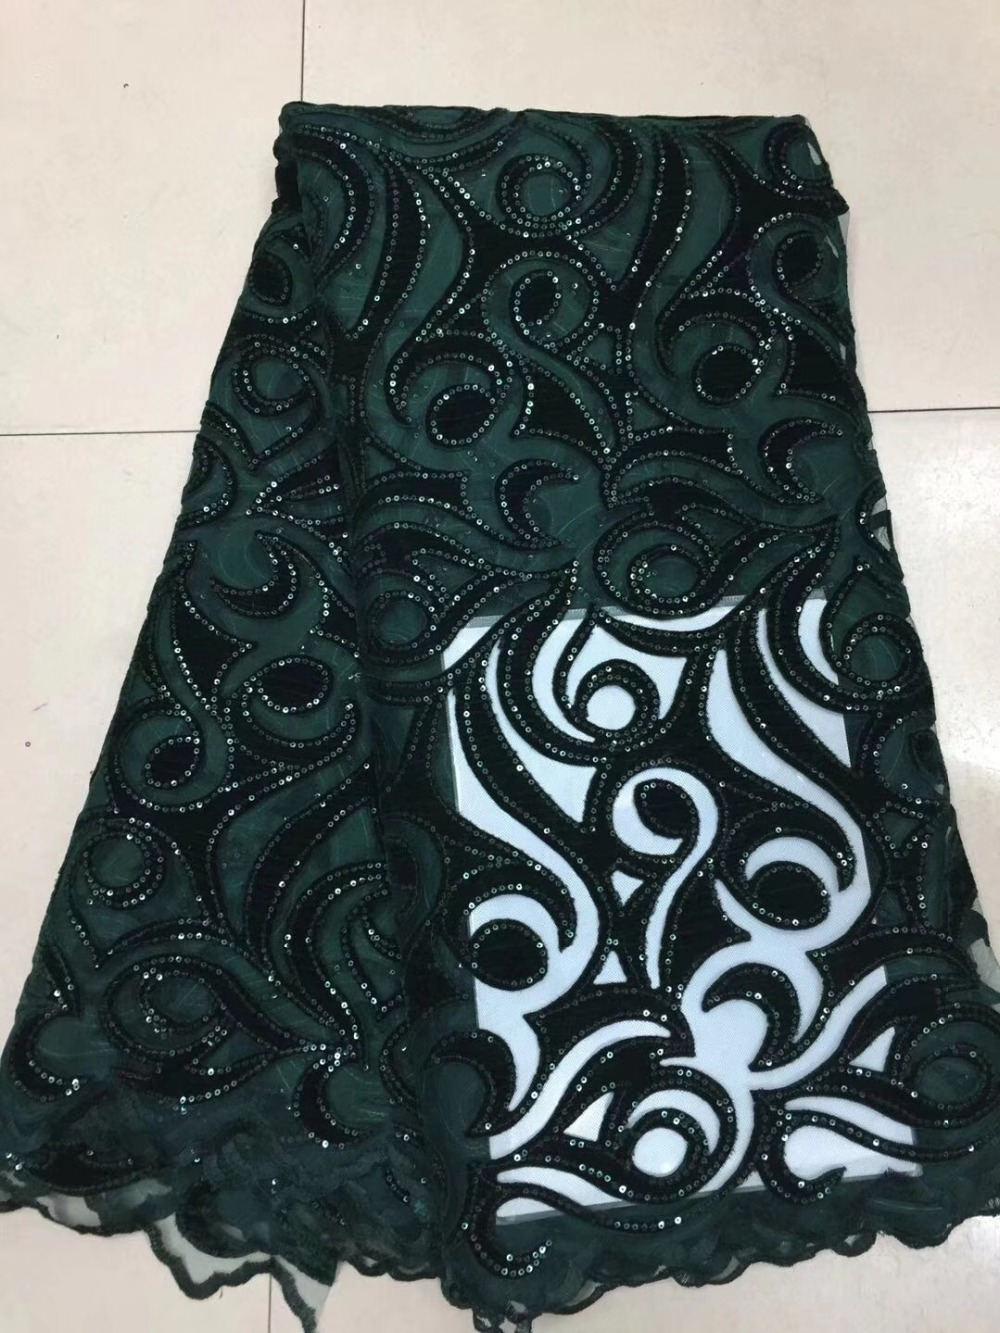 5yards lot 2018 New High quality emerald green Velvet African tulle lace French net lace